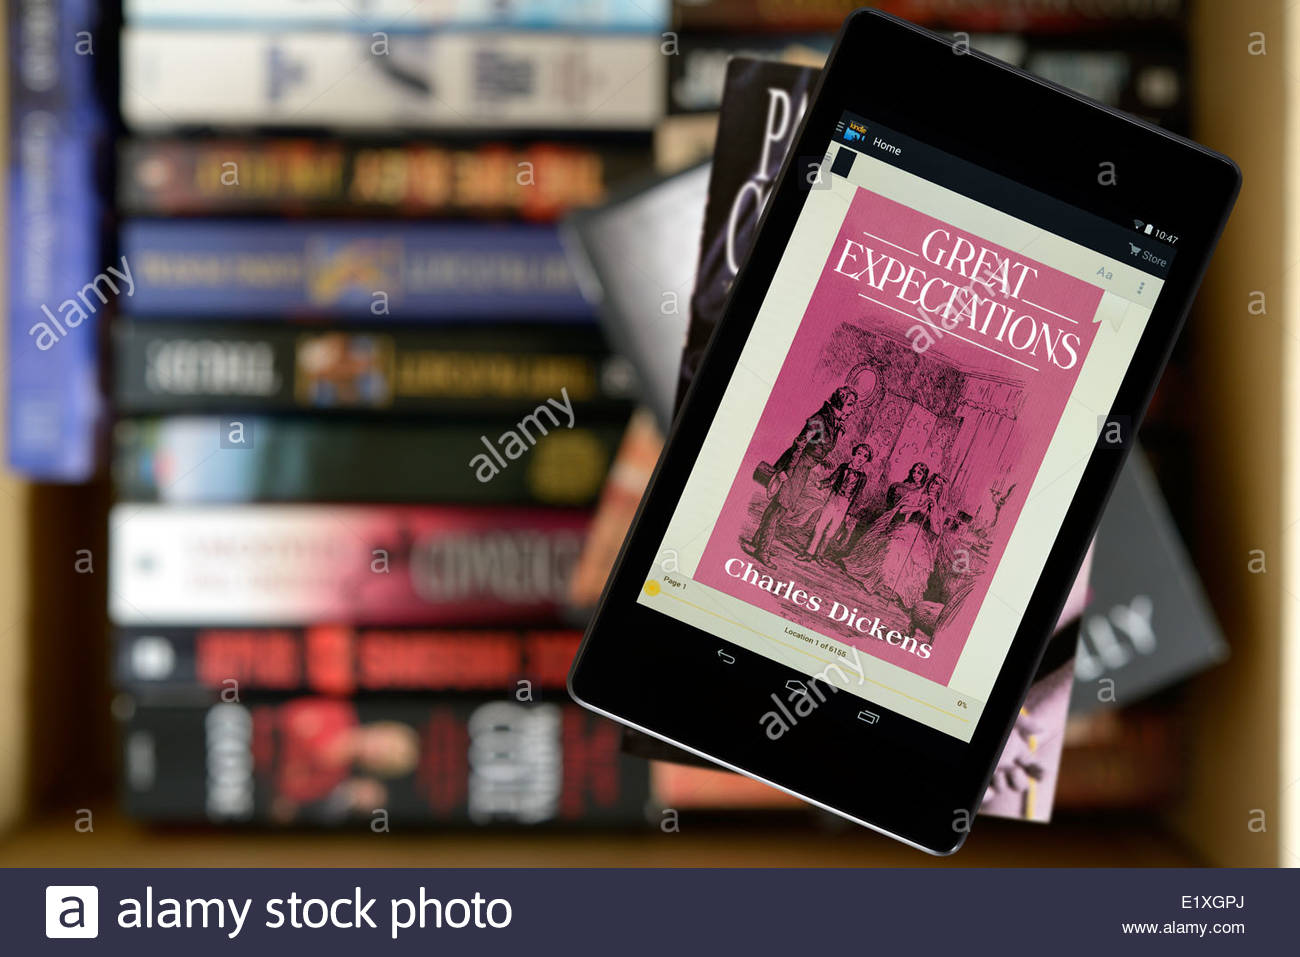 Charles Dickens novel, Great Expectations, digital book cover on PC tablet, England - Stock Image